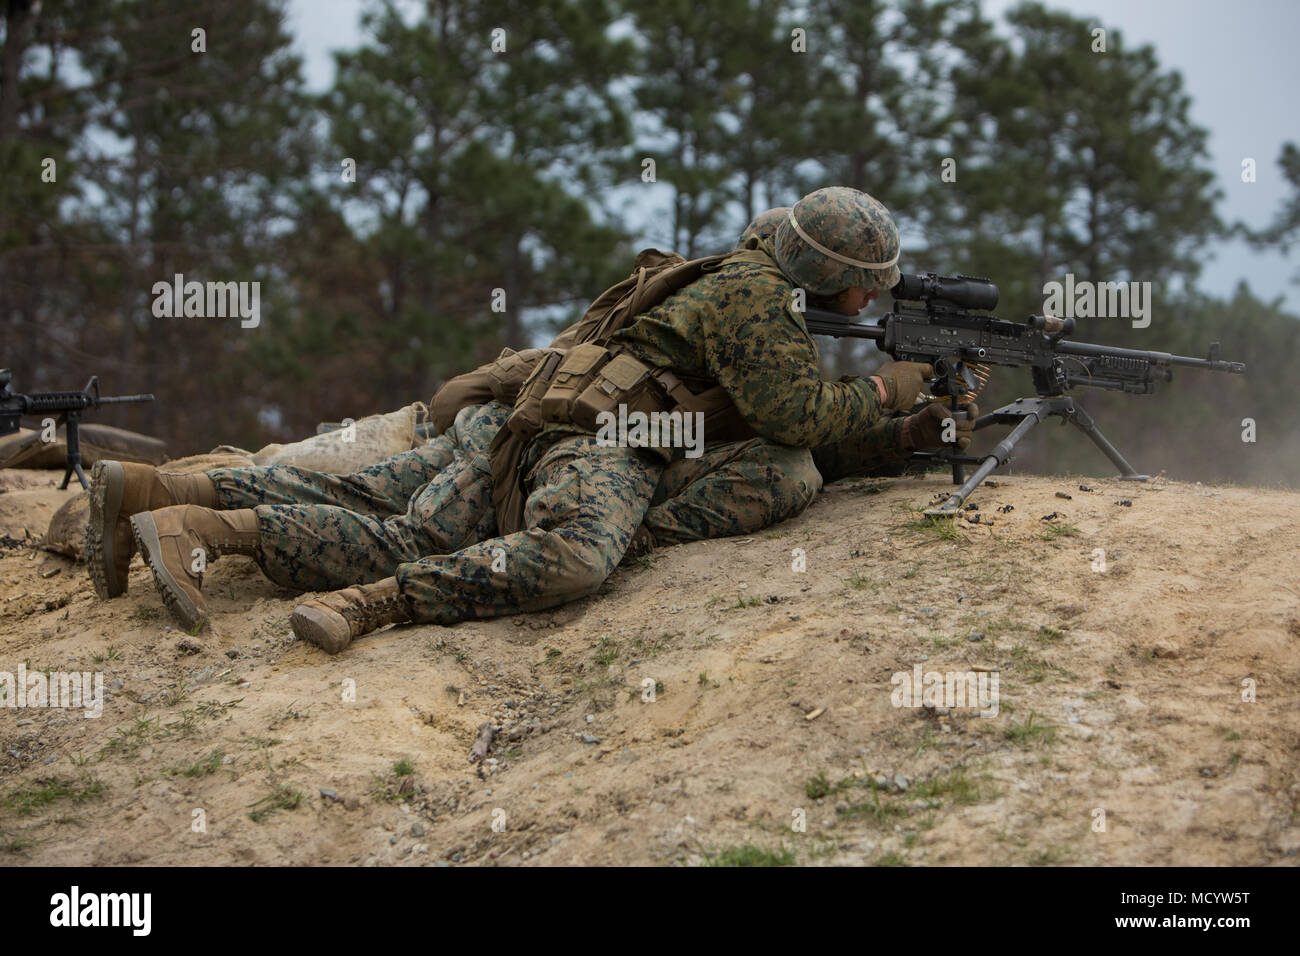 U.S. Marines with Company L, 3rd Battalion, 2nd Marine Regiment, 2nd Marine Division, fire a M240B machine gun during a live fire platoon attack on the new G-29 range  on Camp Lejeune, N.C., March 6, 2018. 2nd Marine Division provided funding and material for the creation of G29, then used 2nd Combat Engineer Battalion equipment and operators to finalize the production of the range. (U.S. Marine Corps photo by Pfc. Nathaniel Hamilton) - Stock Image